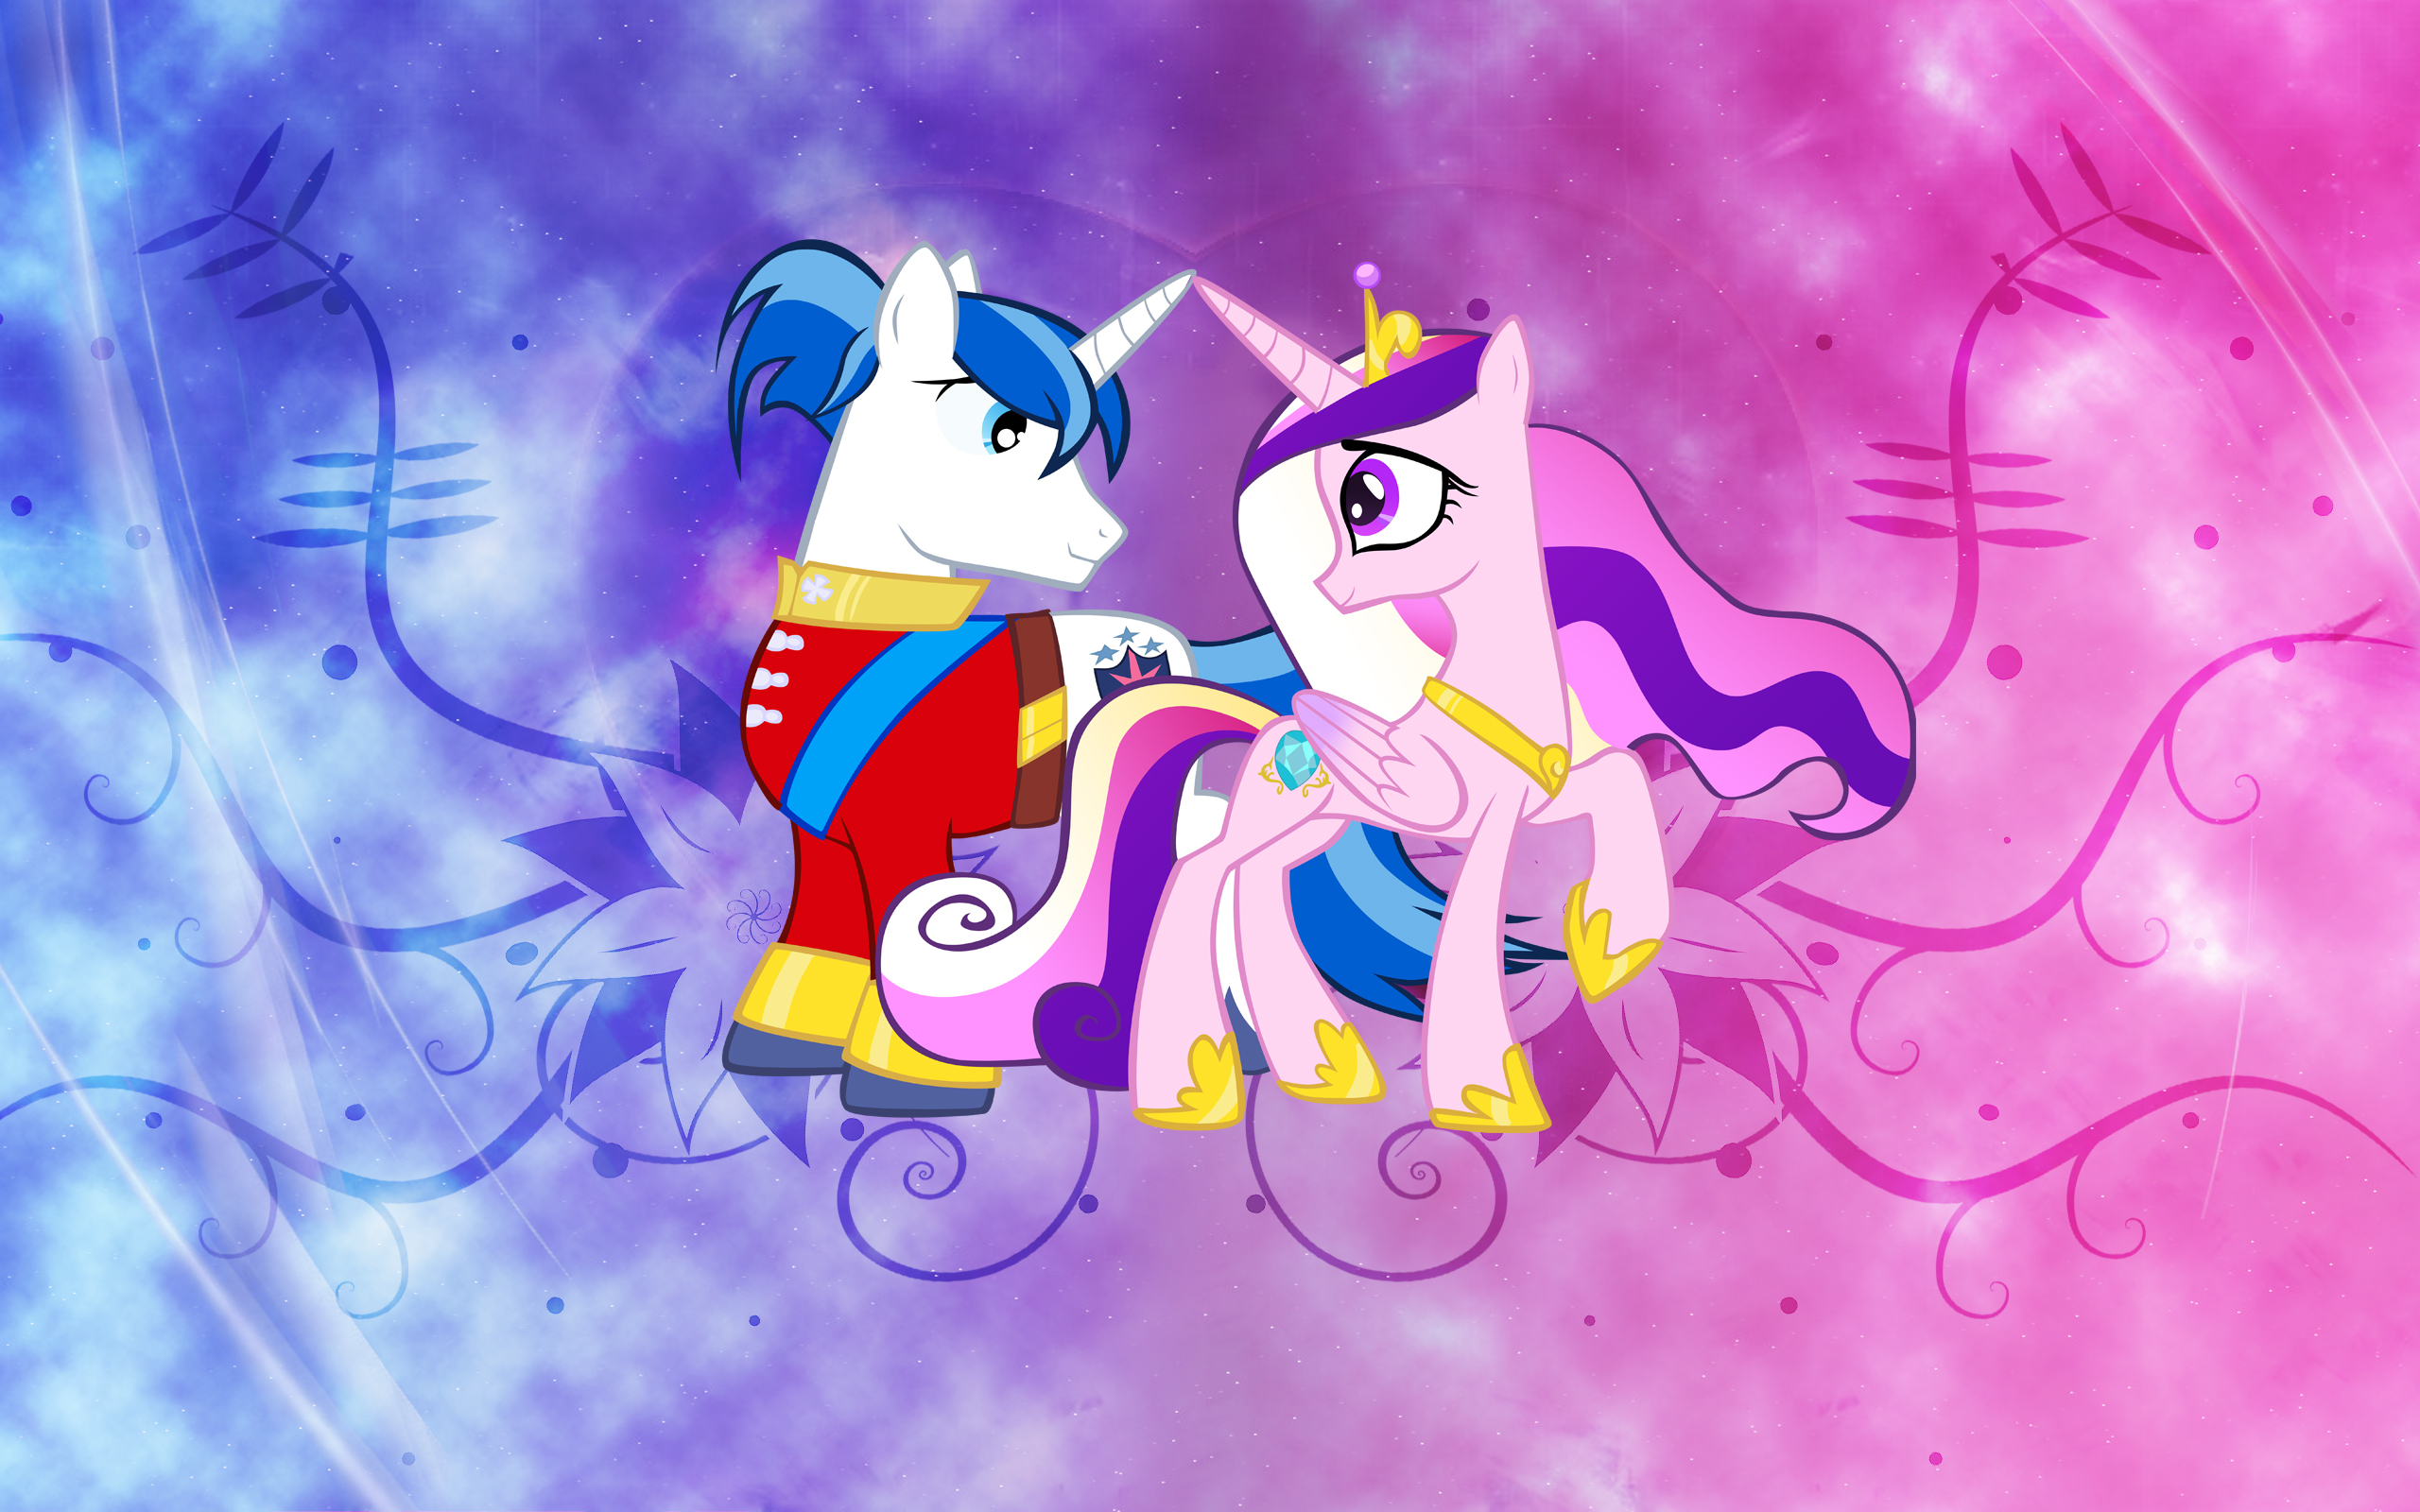 Shining and Cadence Wallpaper by arcticjuniper, Epic-Panda17 and Saeiter